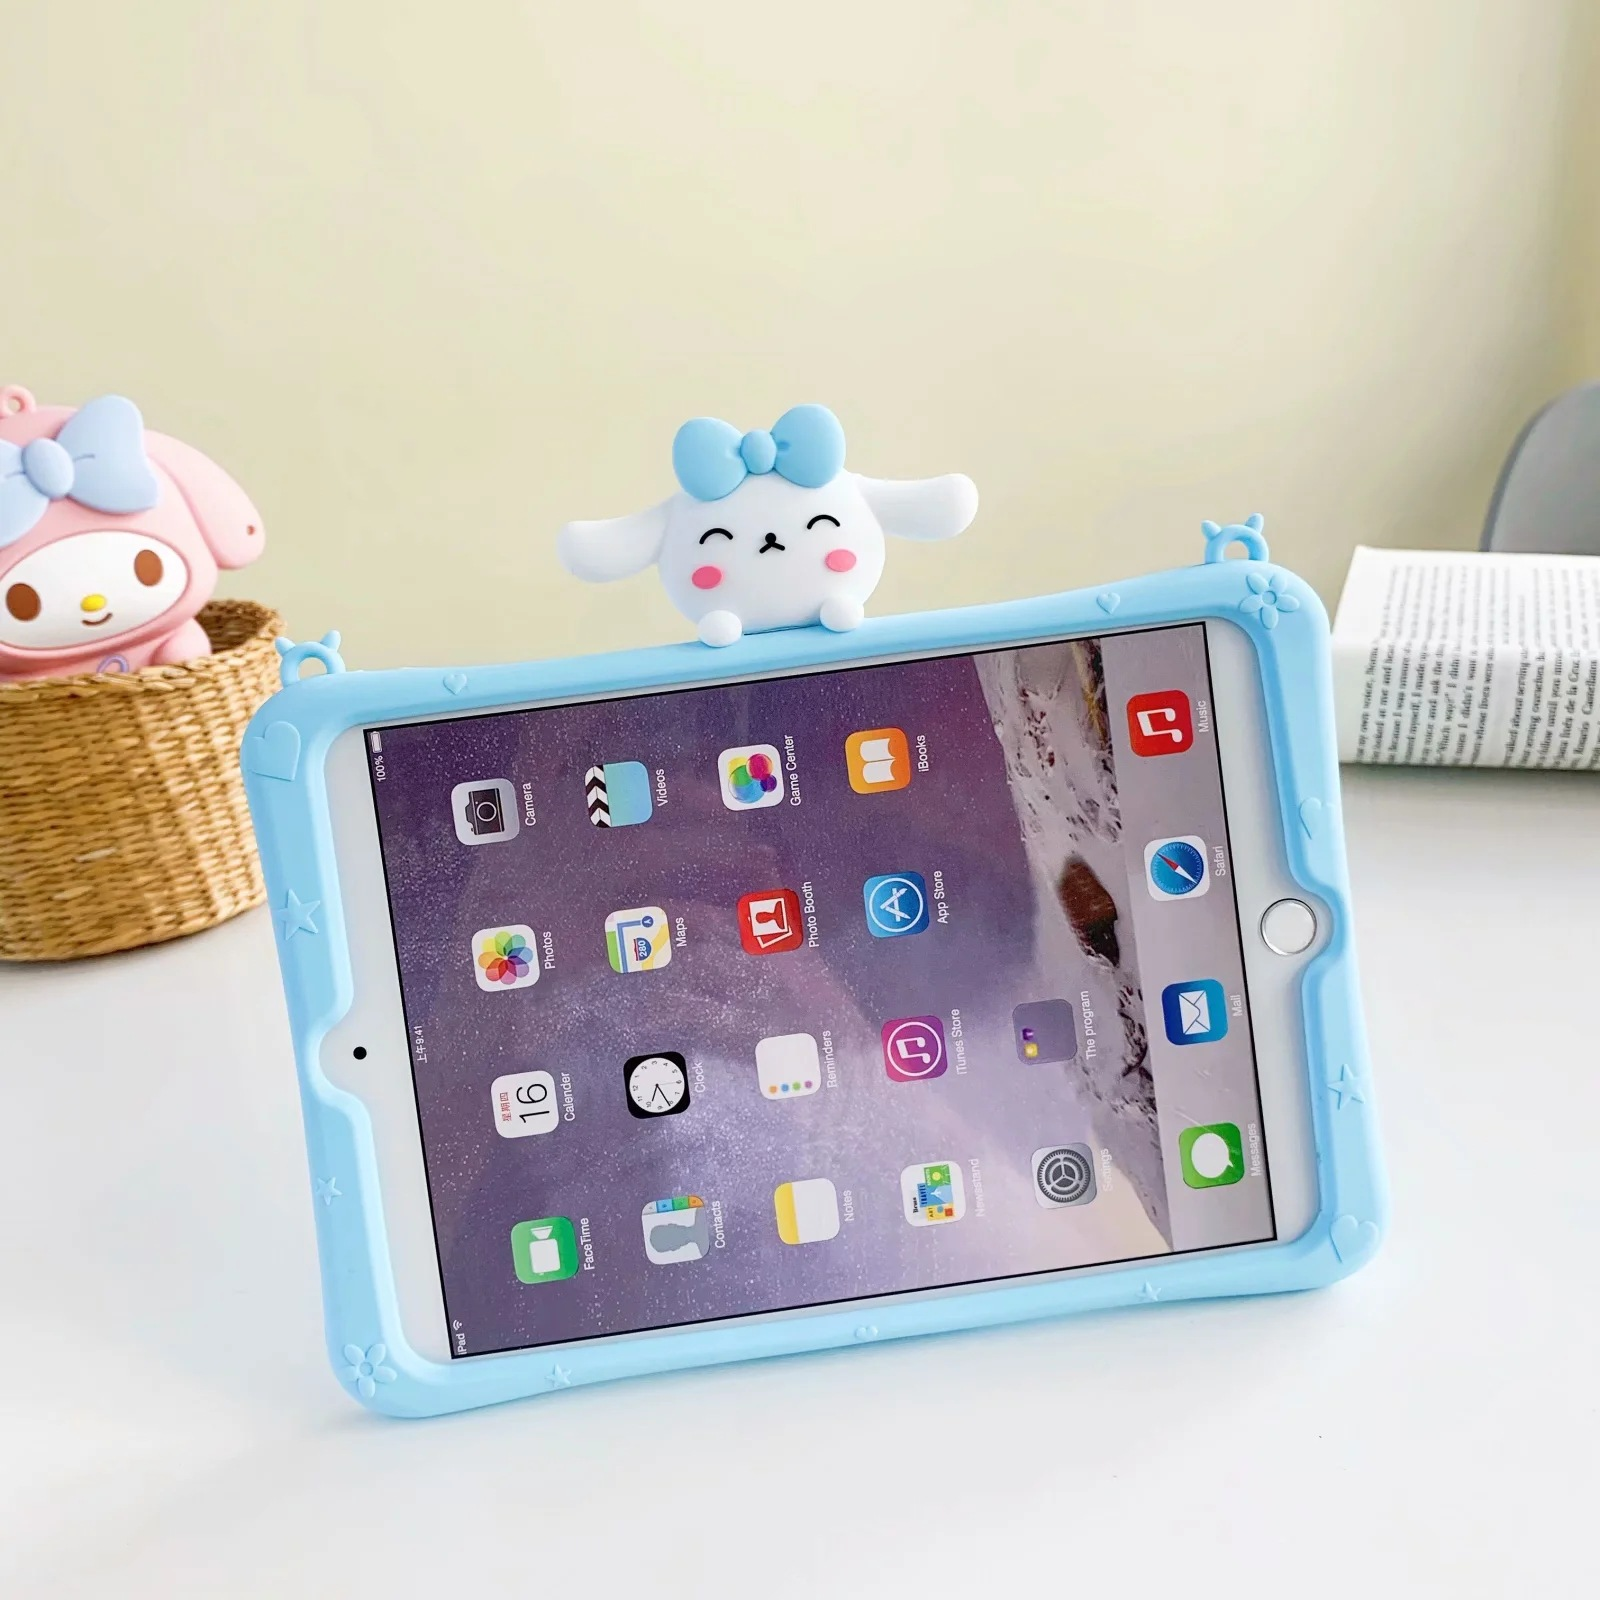 Cute Silicone Tablet Protective Cover with Stand for Online Class Use